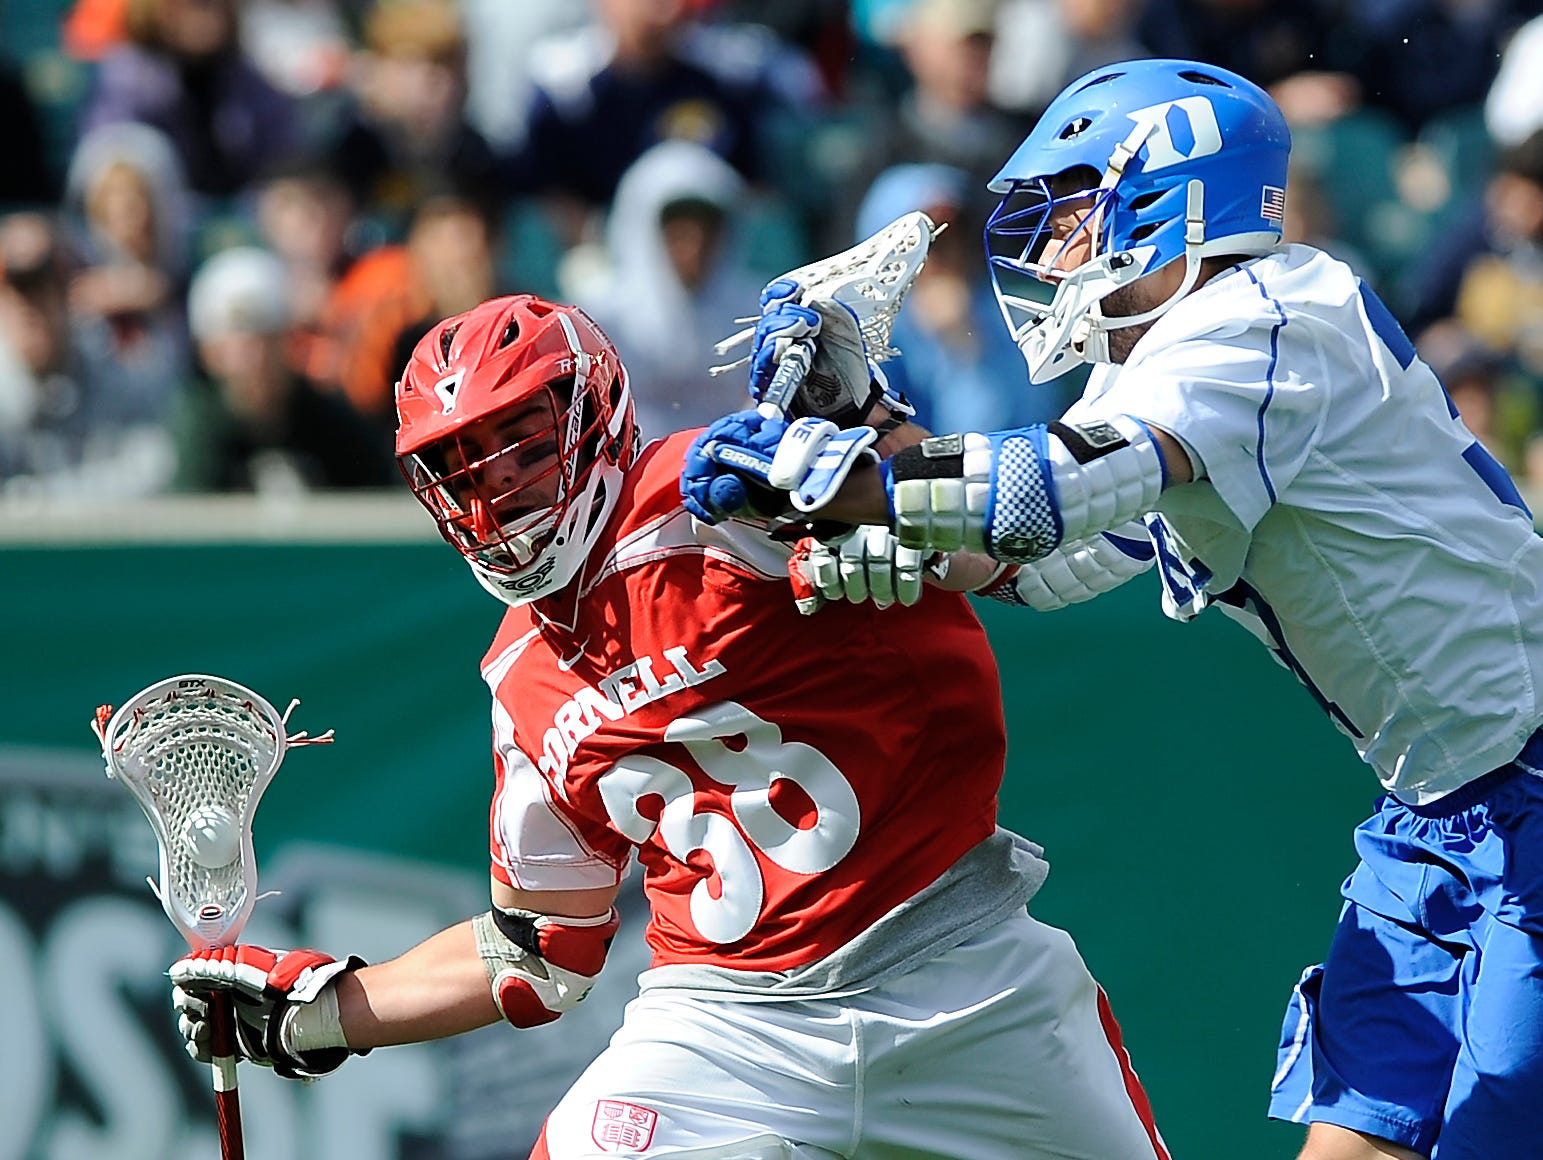 Duke's Brendan Fowler, right, defends against Cornell's Jordan Stevens (35) who brings the ball upfield during the second half of an NCAA college Division 1 semifinal lacrosse game on Saturday, May 25, 2013, in Philadelphia. Duke won 16-14.